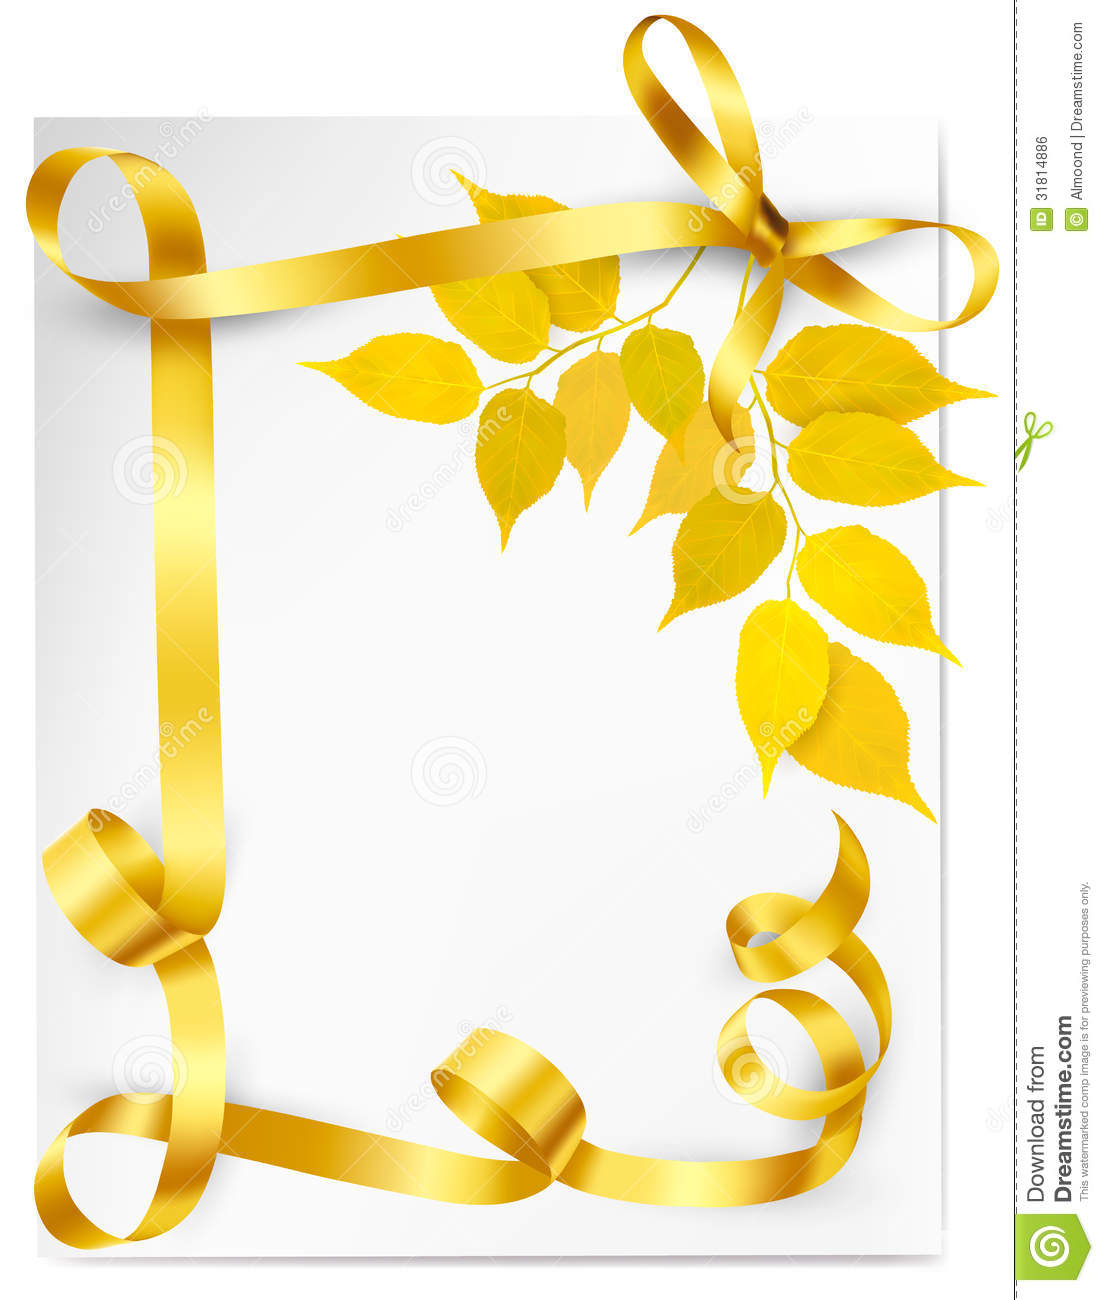 Good Times A History Of The Good Music Roster likewise Wedding Album furthermore Royalty Free Stock Image Autumn Background Yellow Leaves Gold Ribb Ribbons Back To School Vector Illustration Image31814886 besides Baby Boy Shower Themes in addition Trade Boatshow Displays. on outdoor message board designs